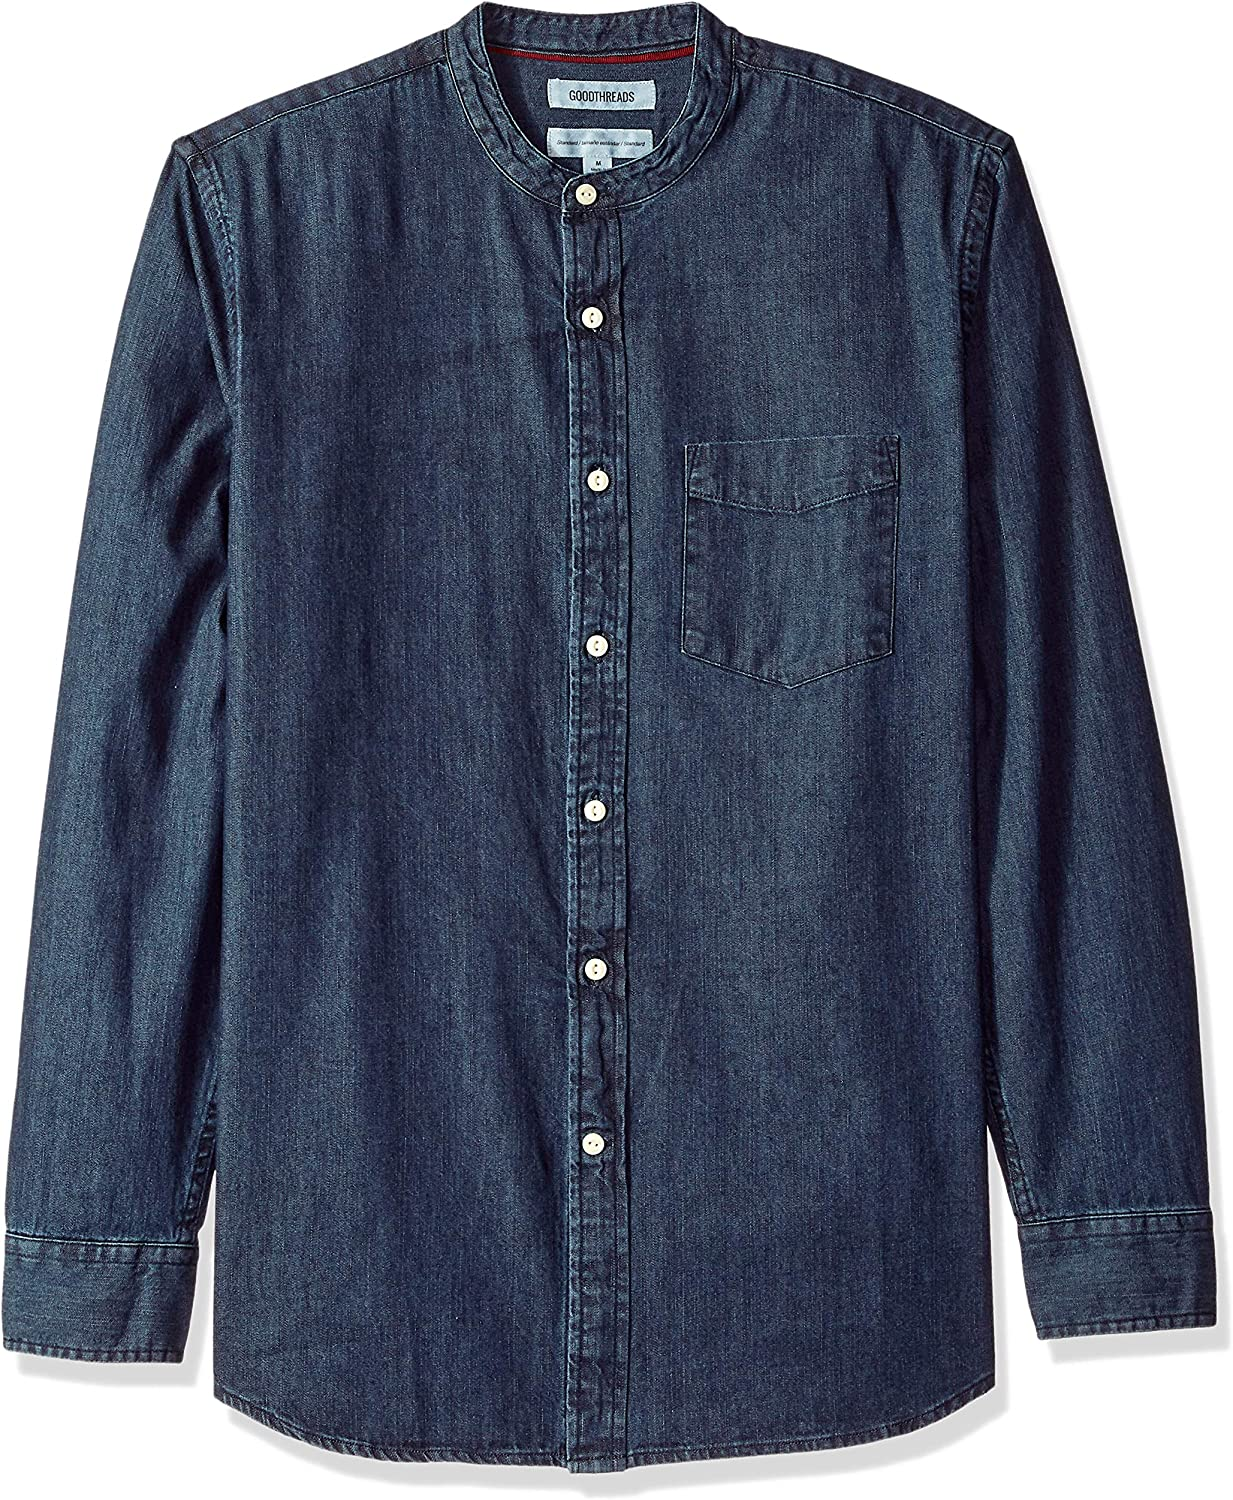 Men's Vintage Workwear Inspired Clothing Amazon Brand - Goodthreads Mens Standard-Fit Long-Sleeve Band-Collar Denim Shirt $30.00 AT vintagedancer.com